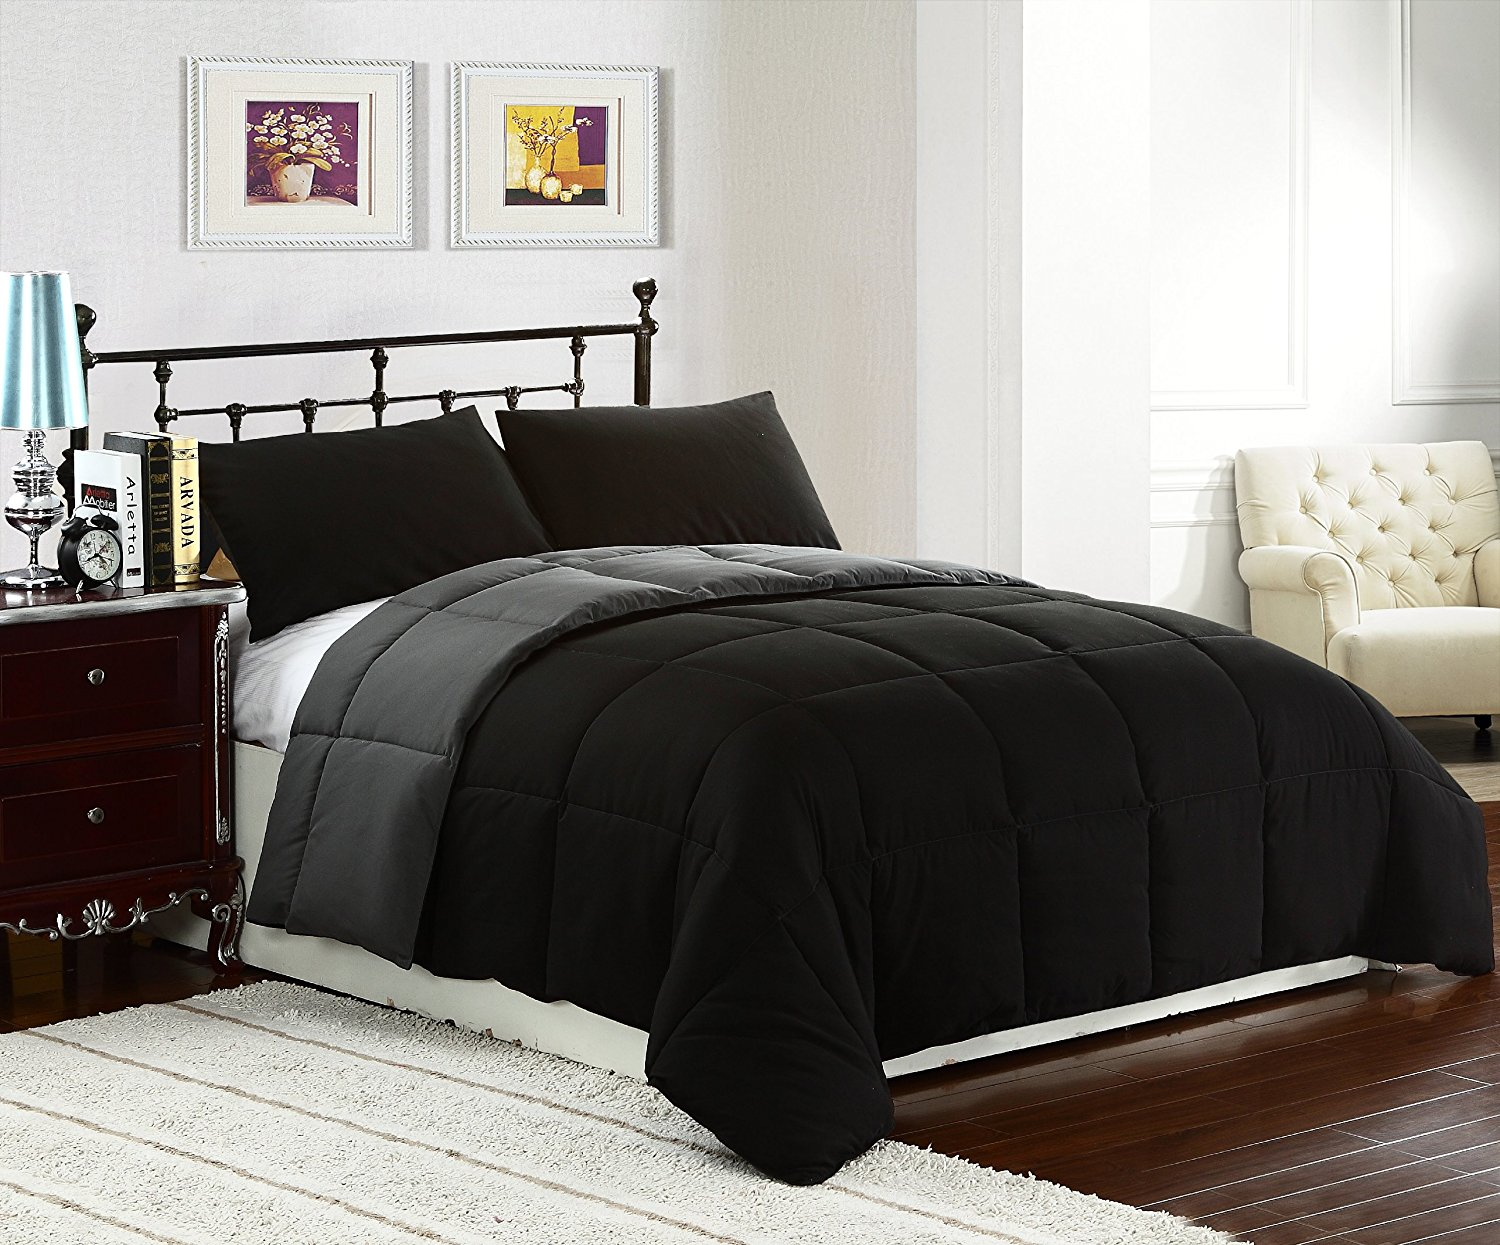 Macys Comforters | Queen Bedding Sets | Purple Queen Size Bedding Sets